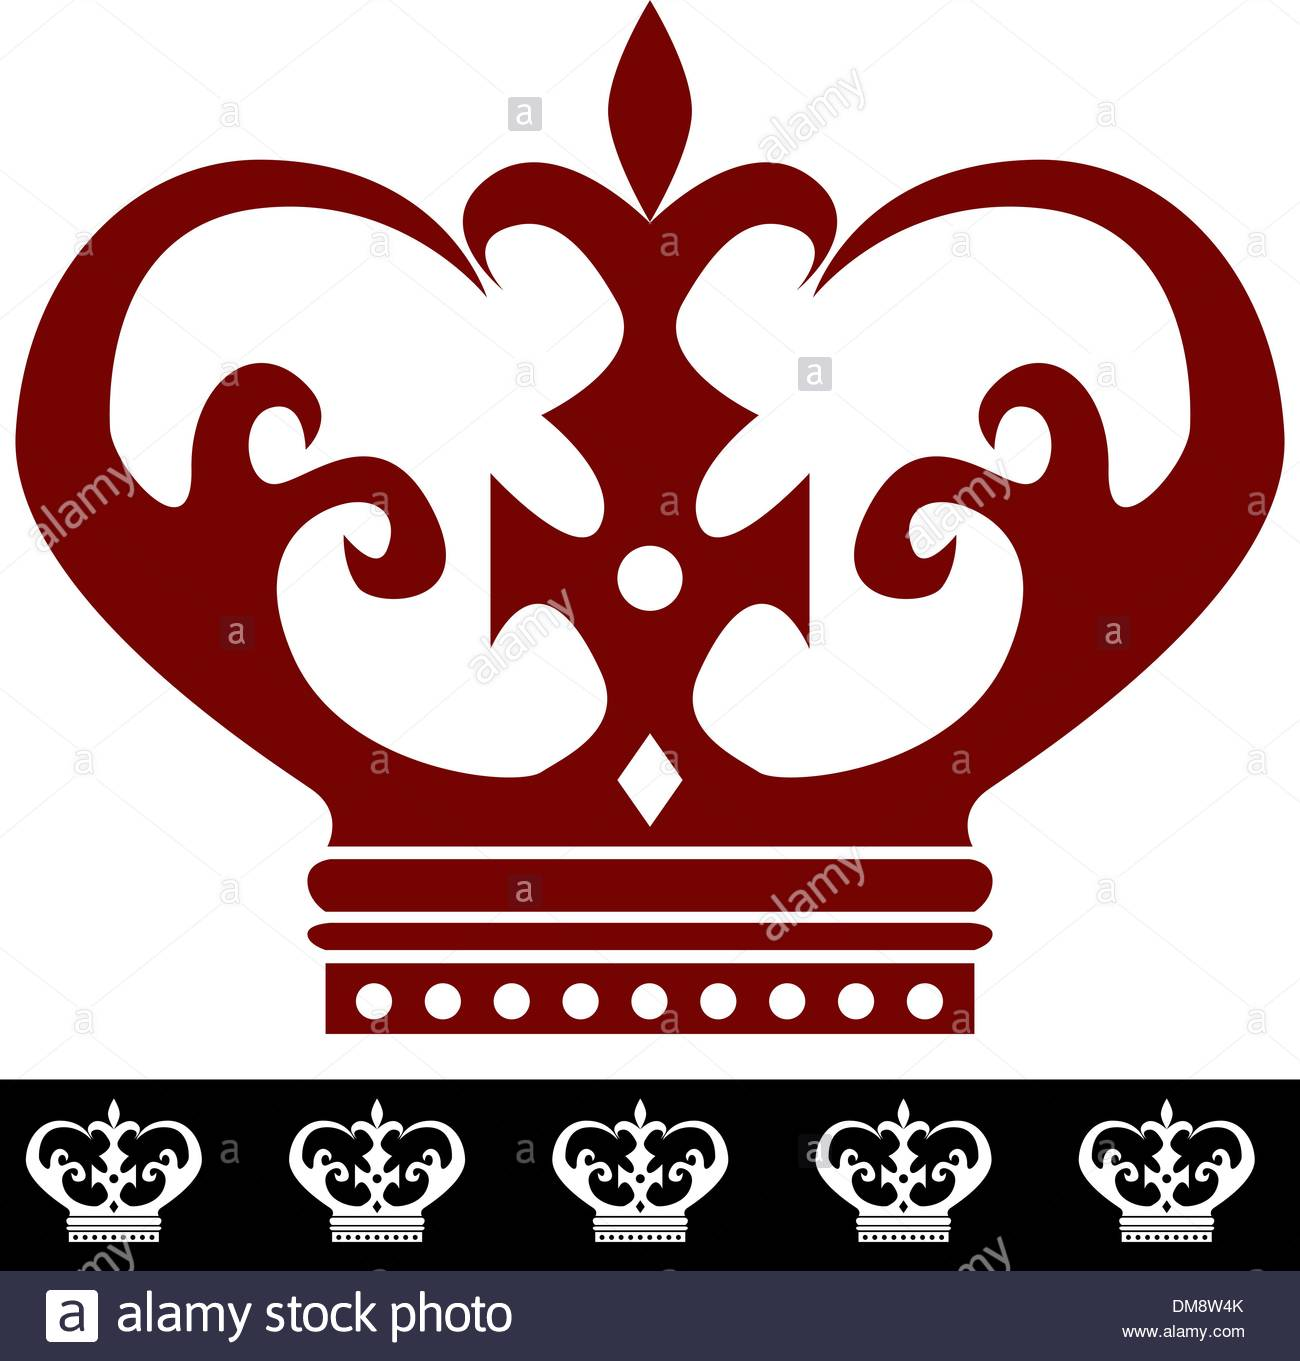 1300x1361 King Crown Icon And Border Stock Vector Art Amp Illustration, Vector